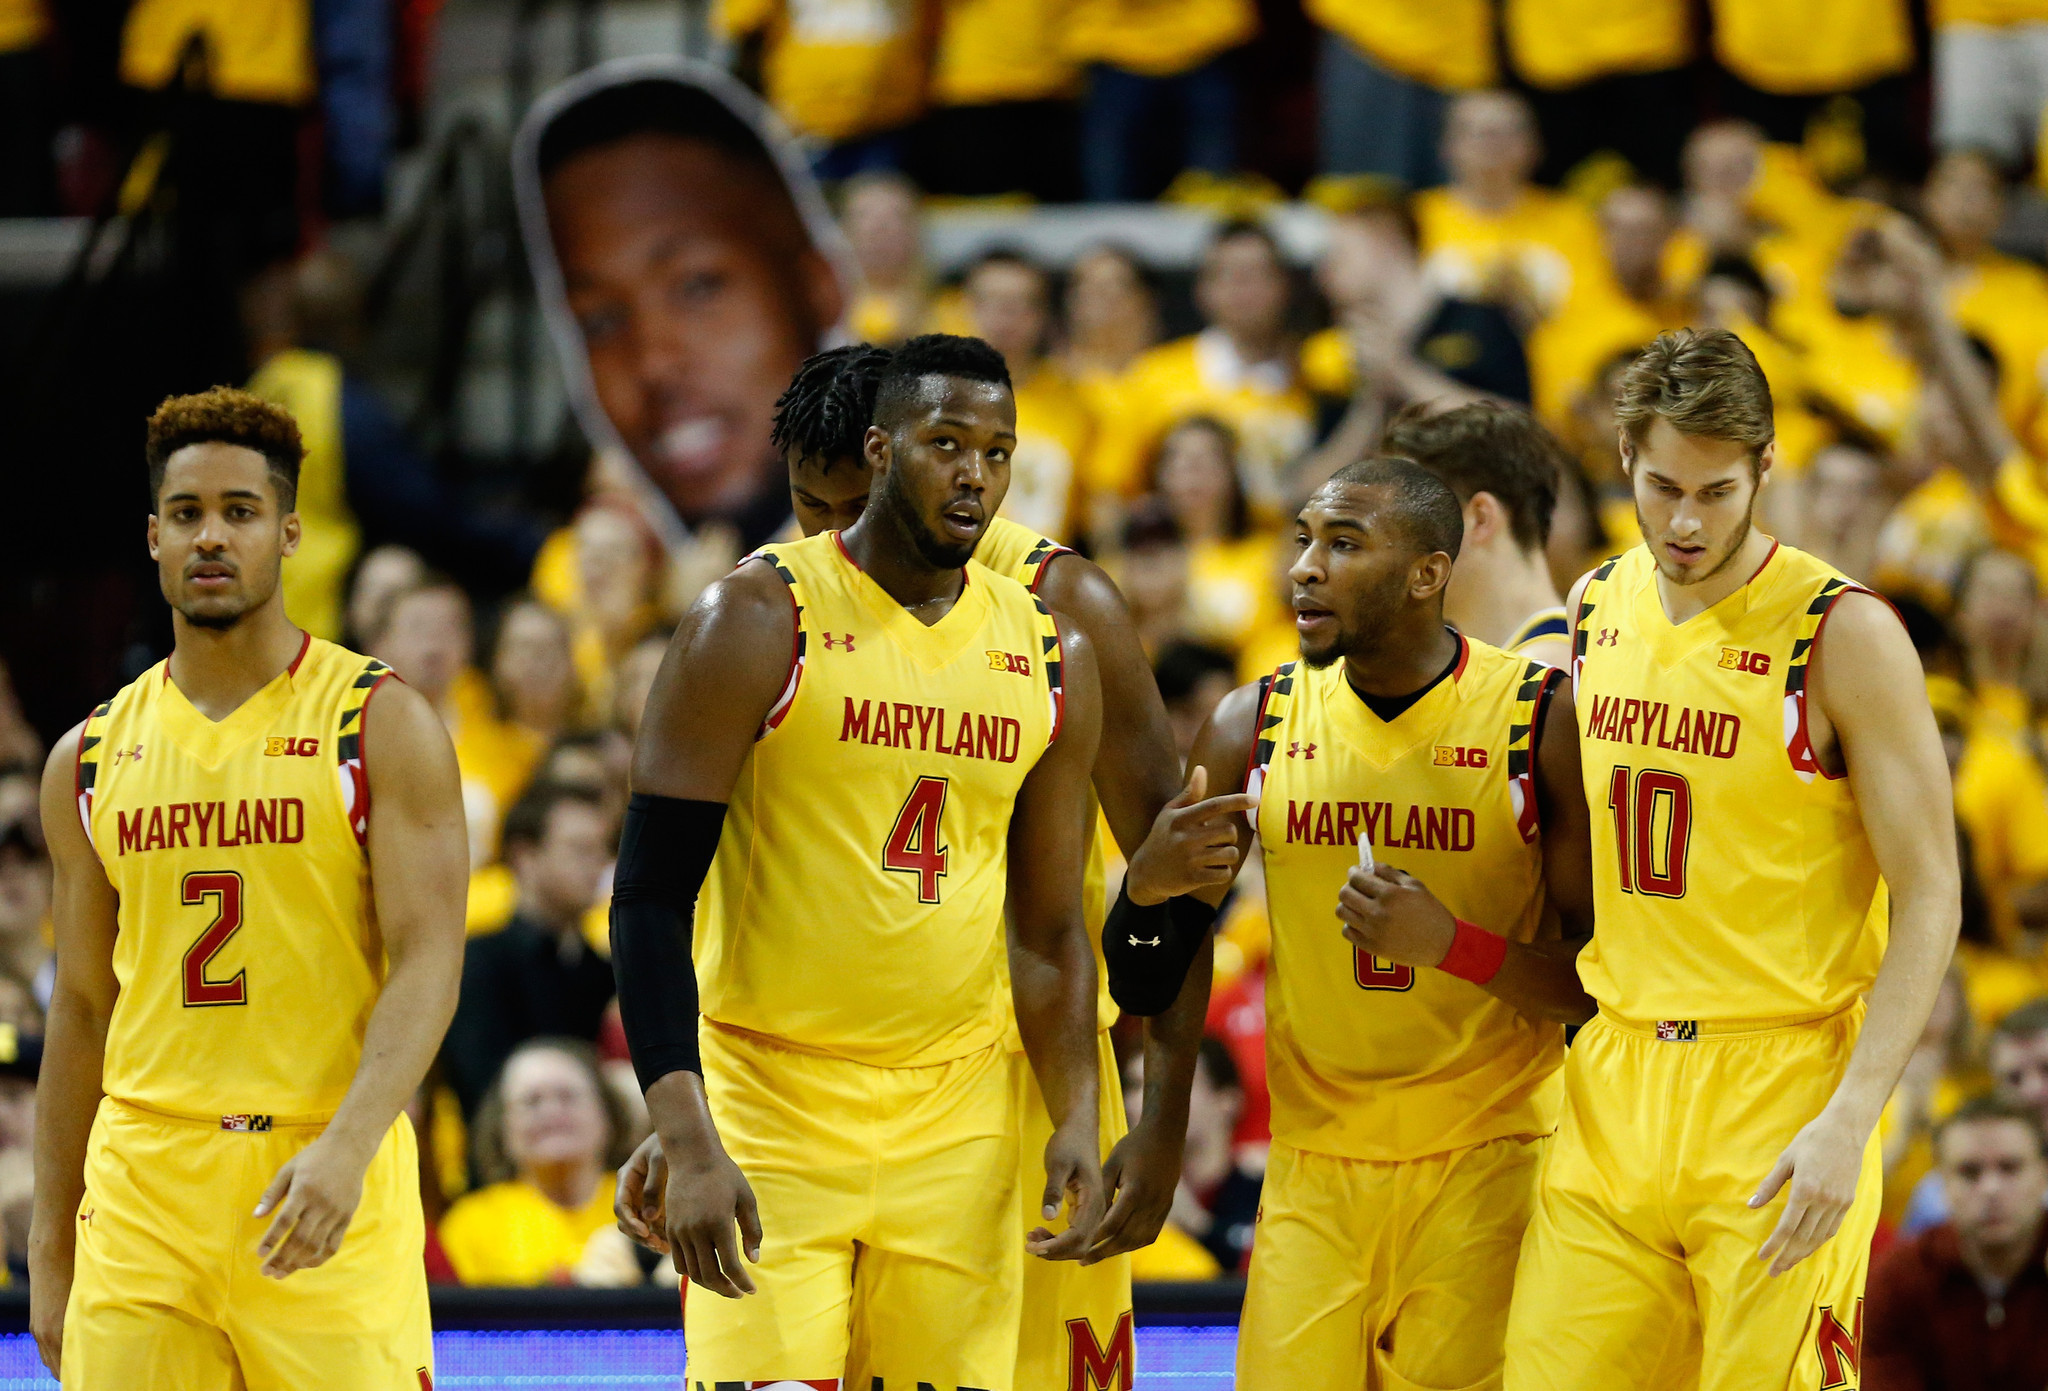 Maryland men's basketball's home schedule includes Indiana, Iowa, Michigan State and Purdue ...